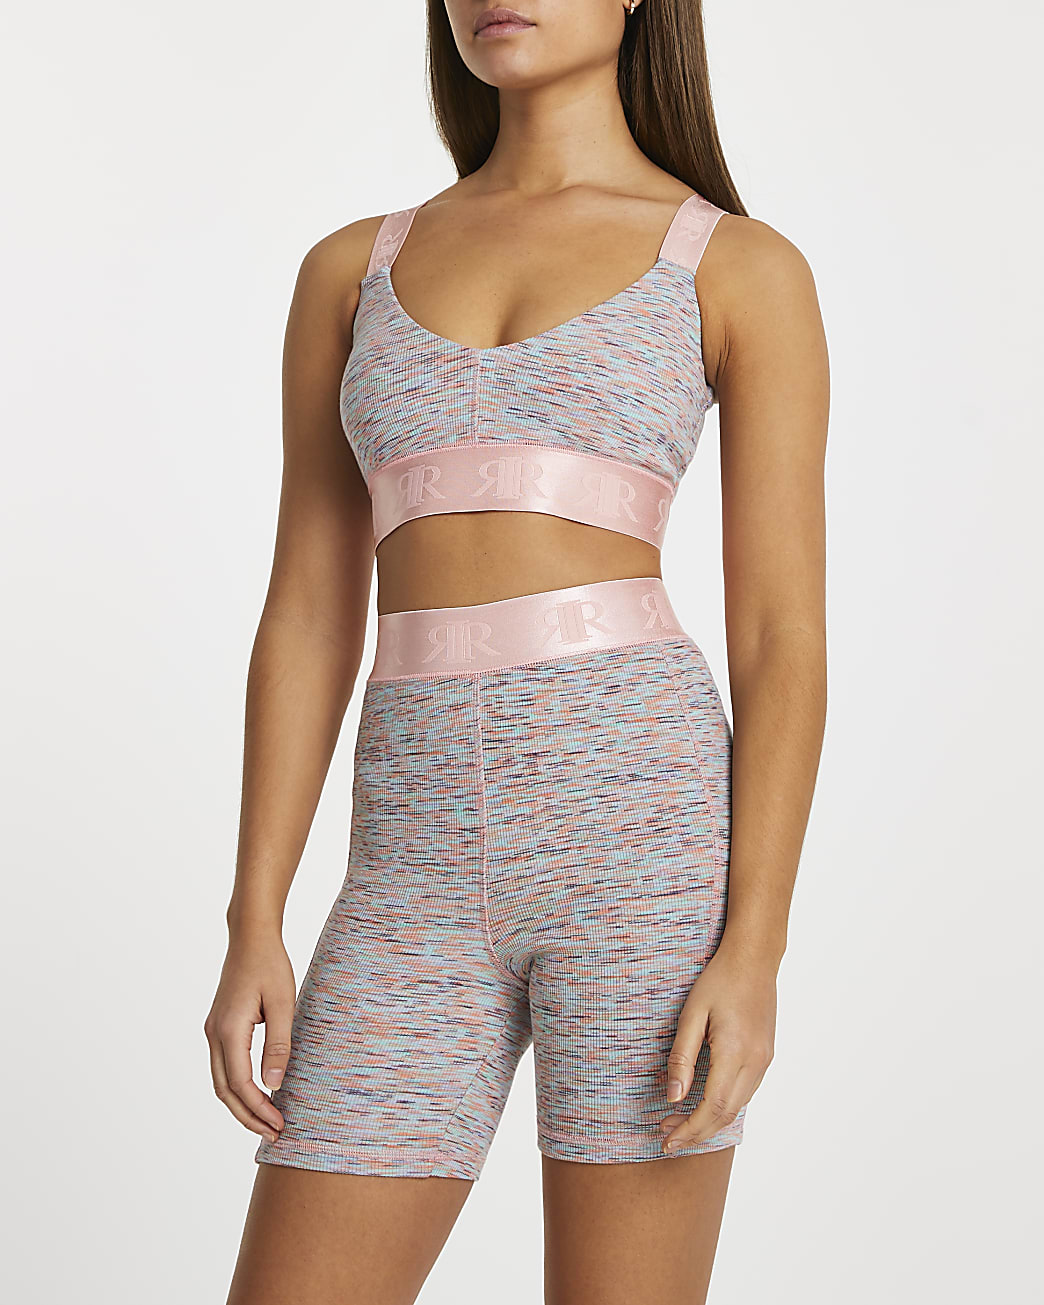 Pink space dye Intimates cycling shorts